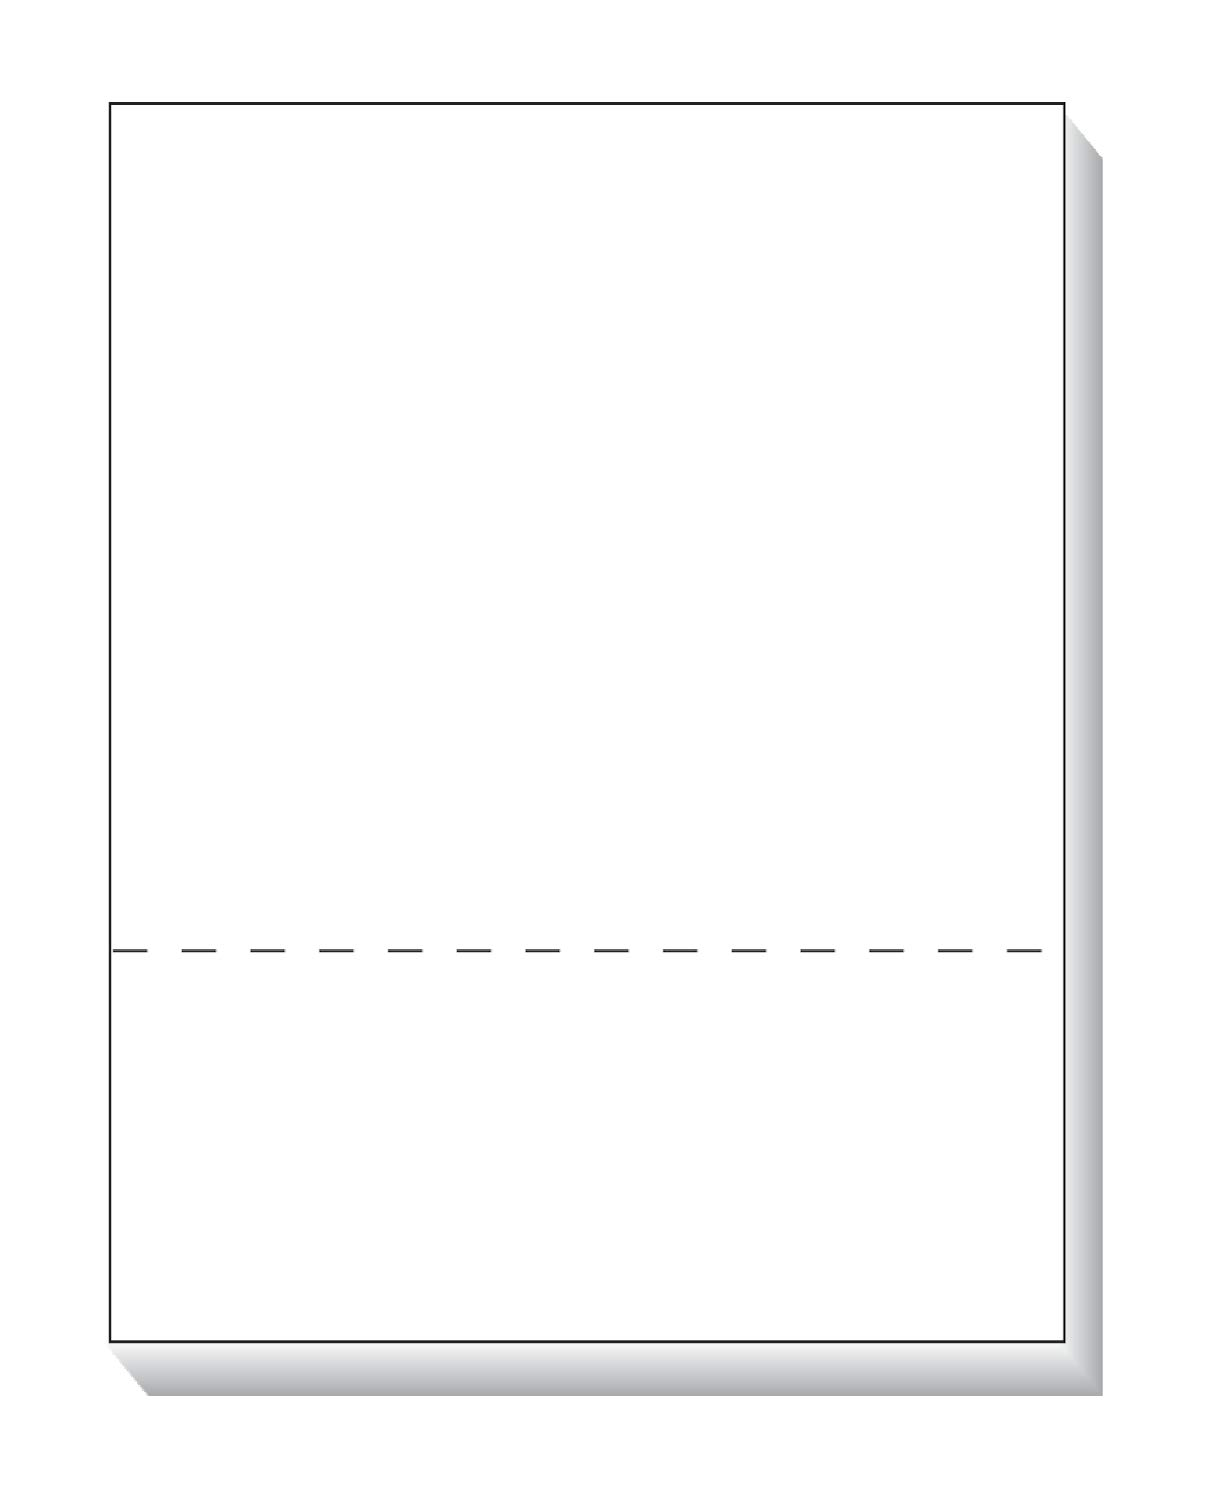 TOPS Laser Cut Sheet Paper, Perforated 3-1/2 Inches from Bottom, 8.5 x 11 Inches, 20 Pound, 500 Sheets, White (05050)